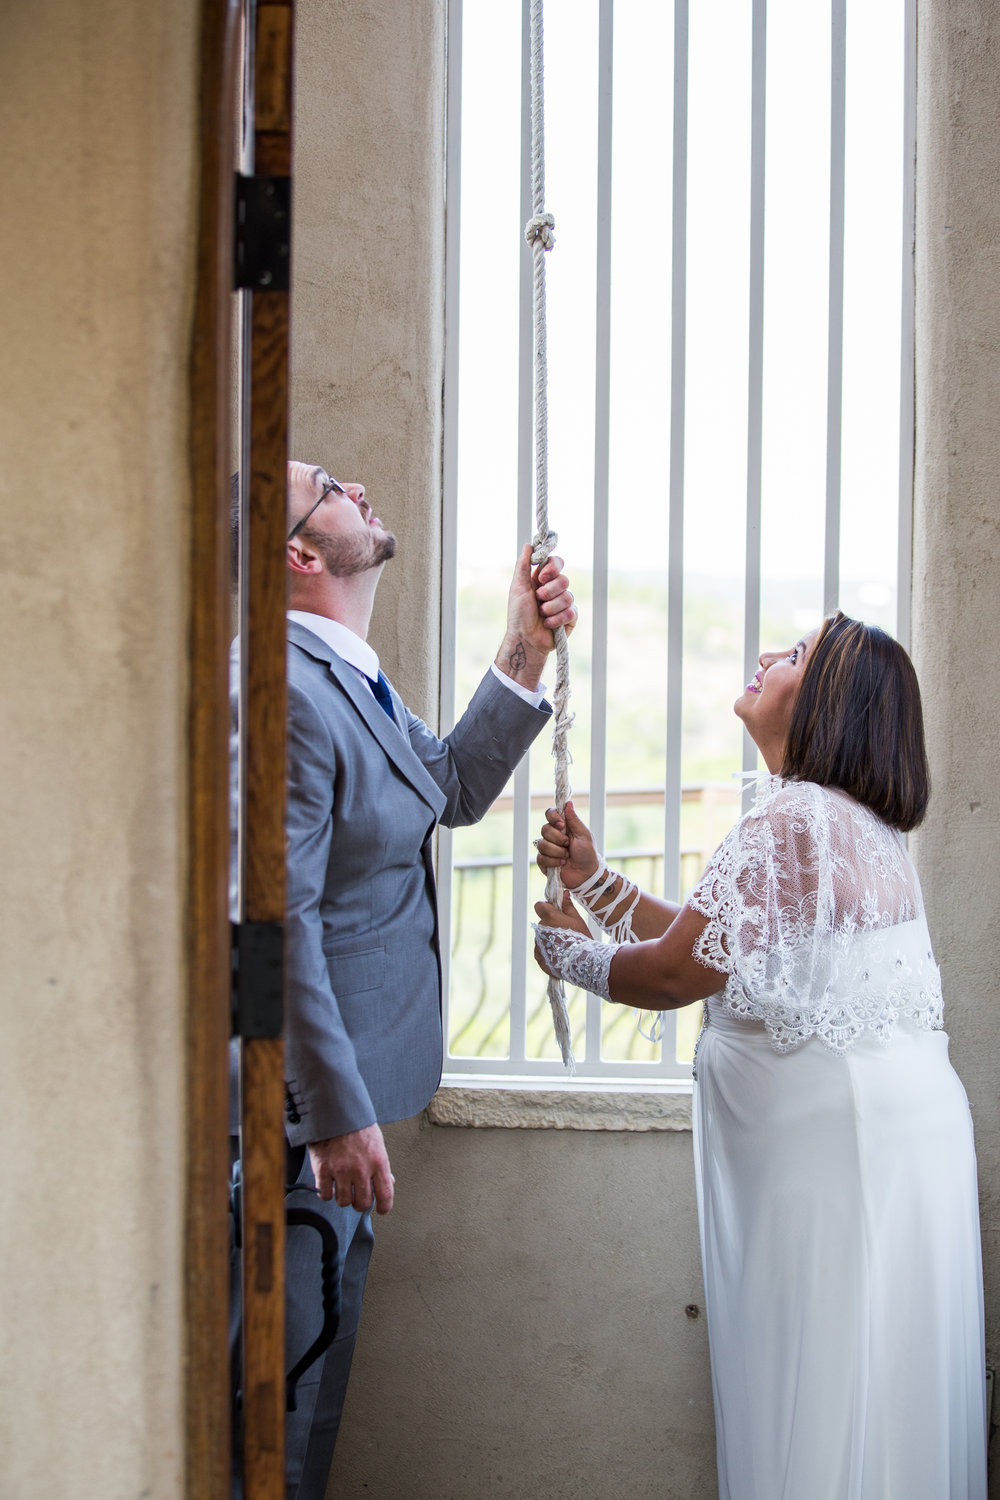 It's tradition for couples to ring the chapel bell immediately after getting married.